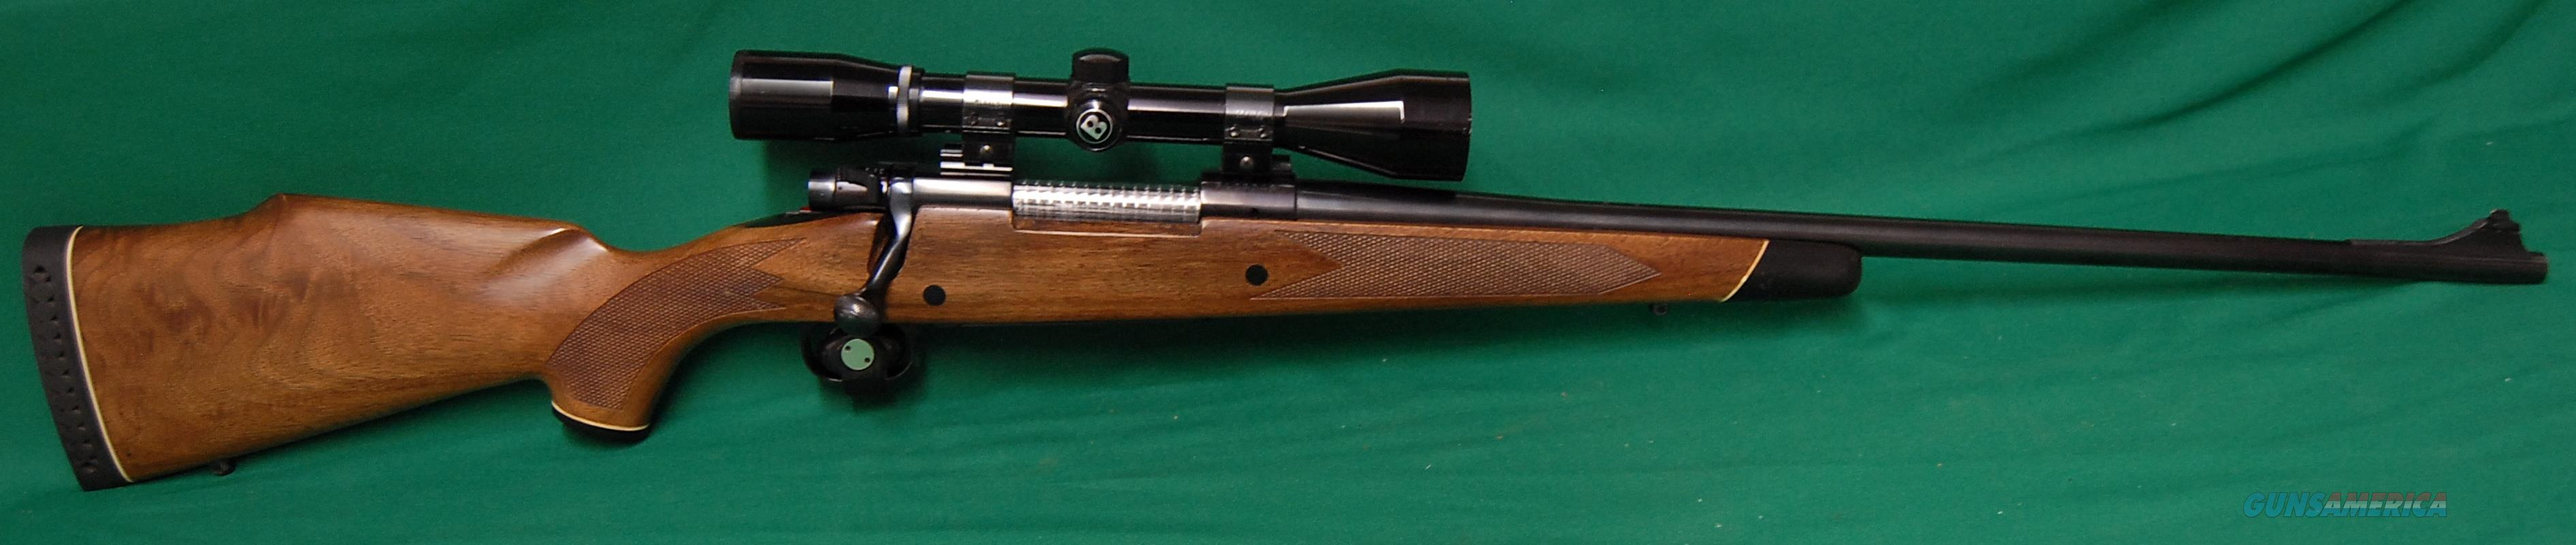 Winchester Mod 70,  7mm Rem Mag W/ Bushnell 6X  40mm Scope   USED  Guns > Rifles > Winchester Rifles - Modern Bolt/Auto/Single > Model 70 > Post-64